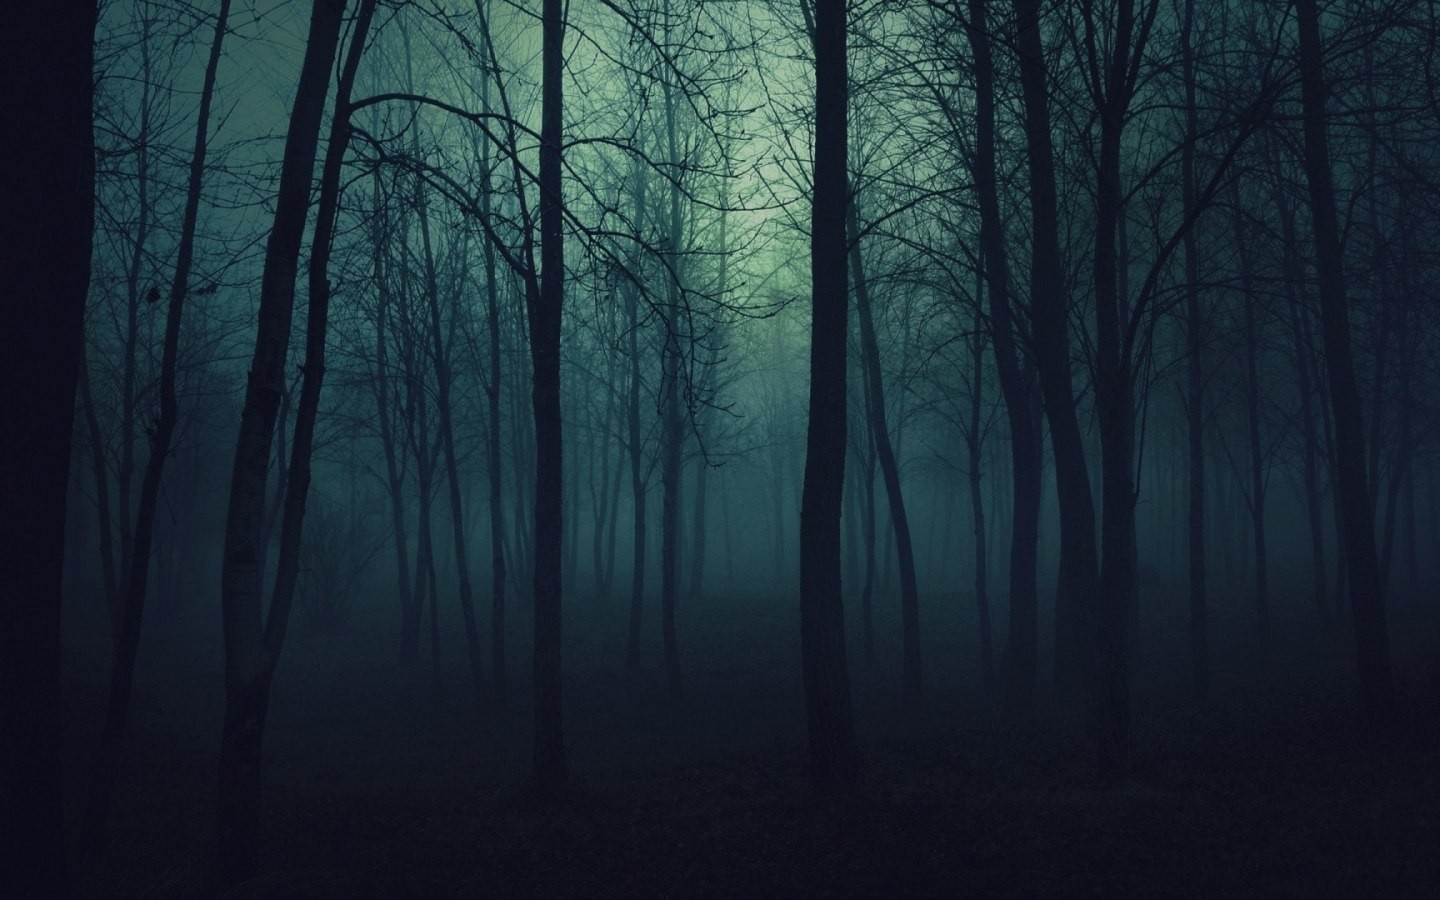 Dark Nature Wallpaper nature trees dark forests fog